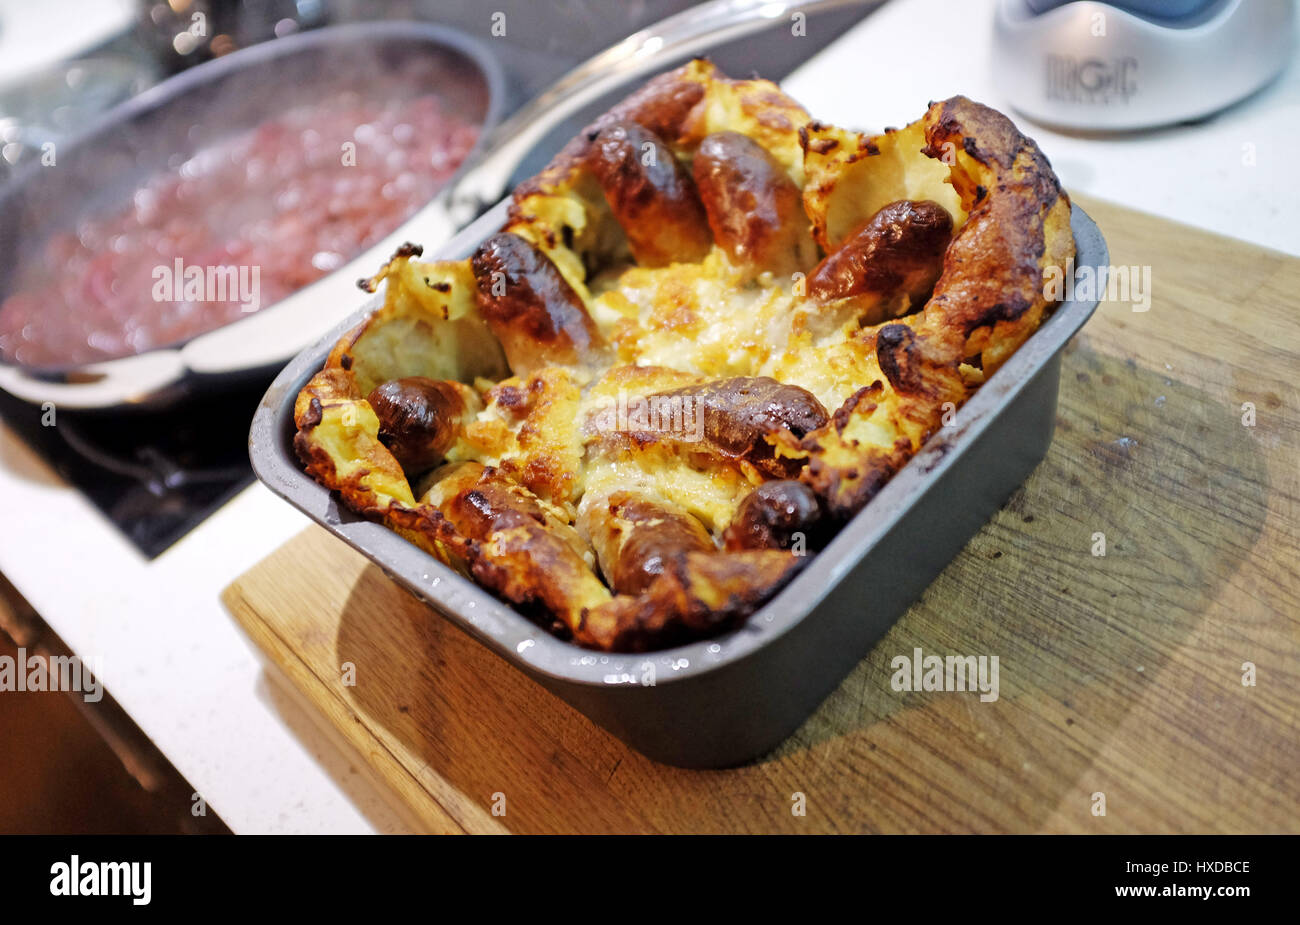 Home made Toad in the Hole sausages in batter meal - Stock Image